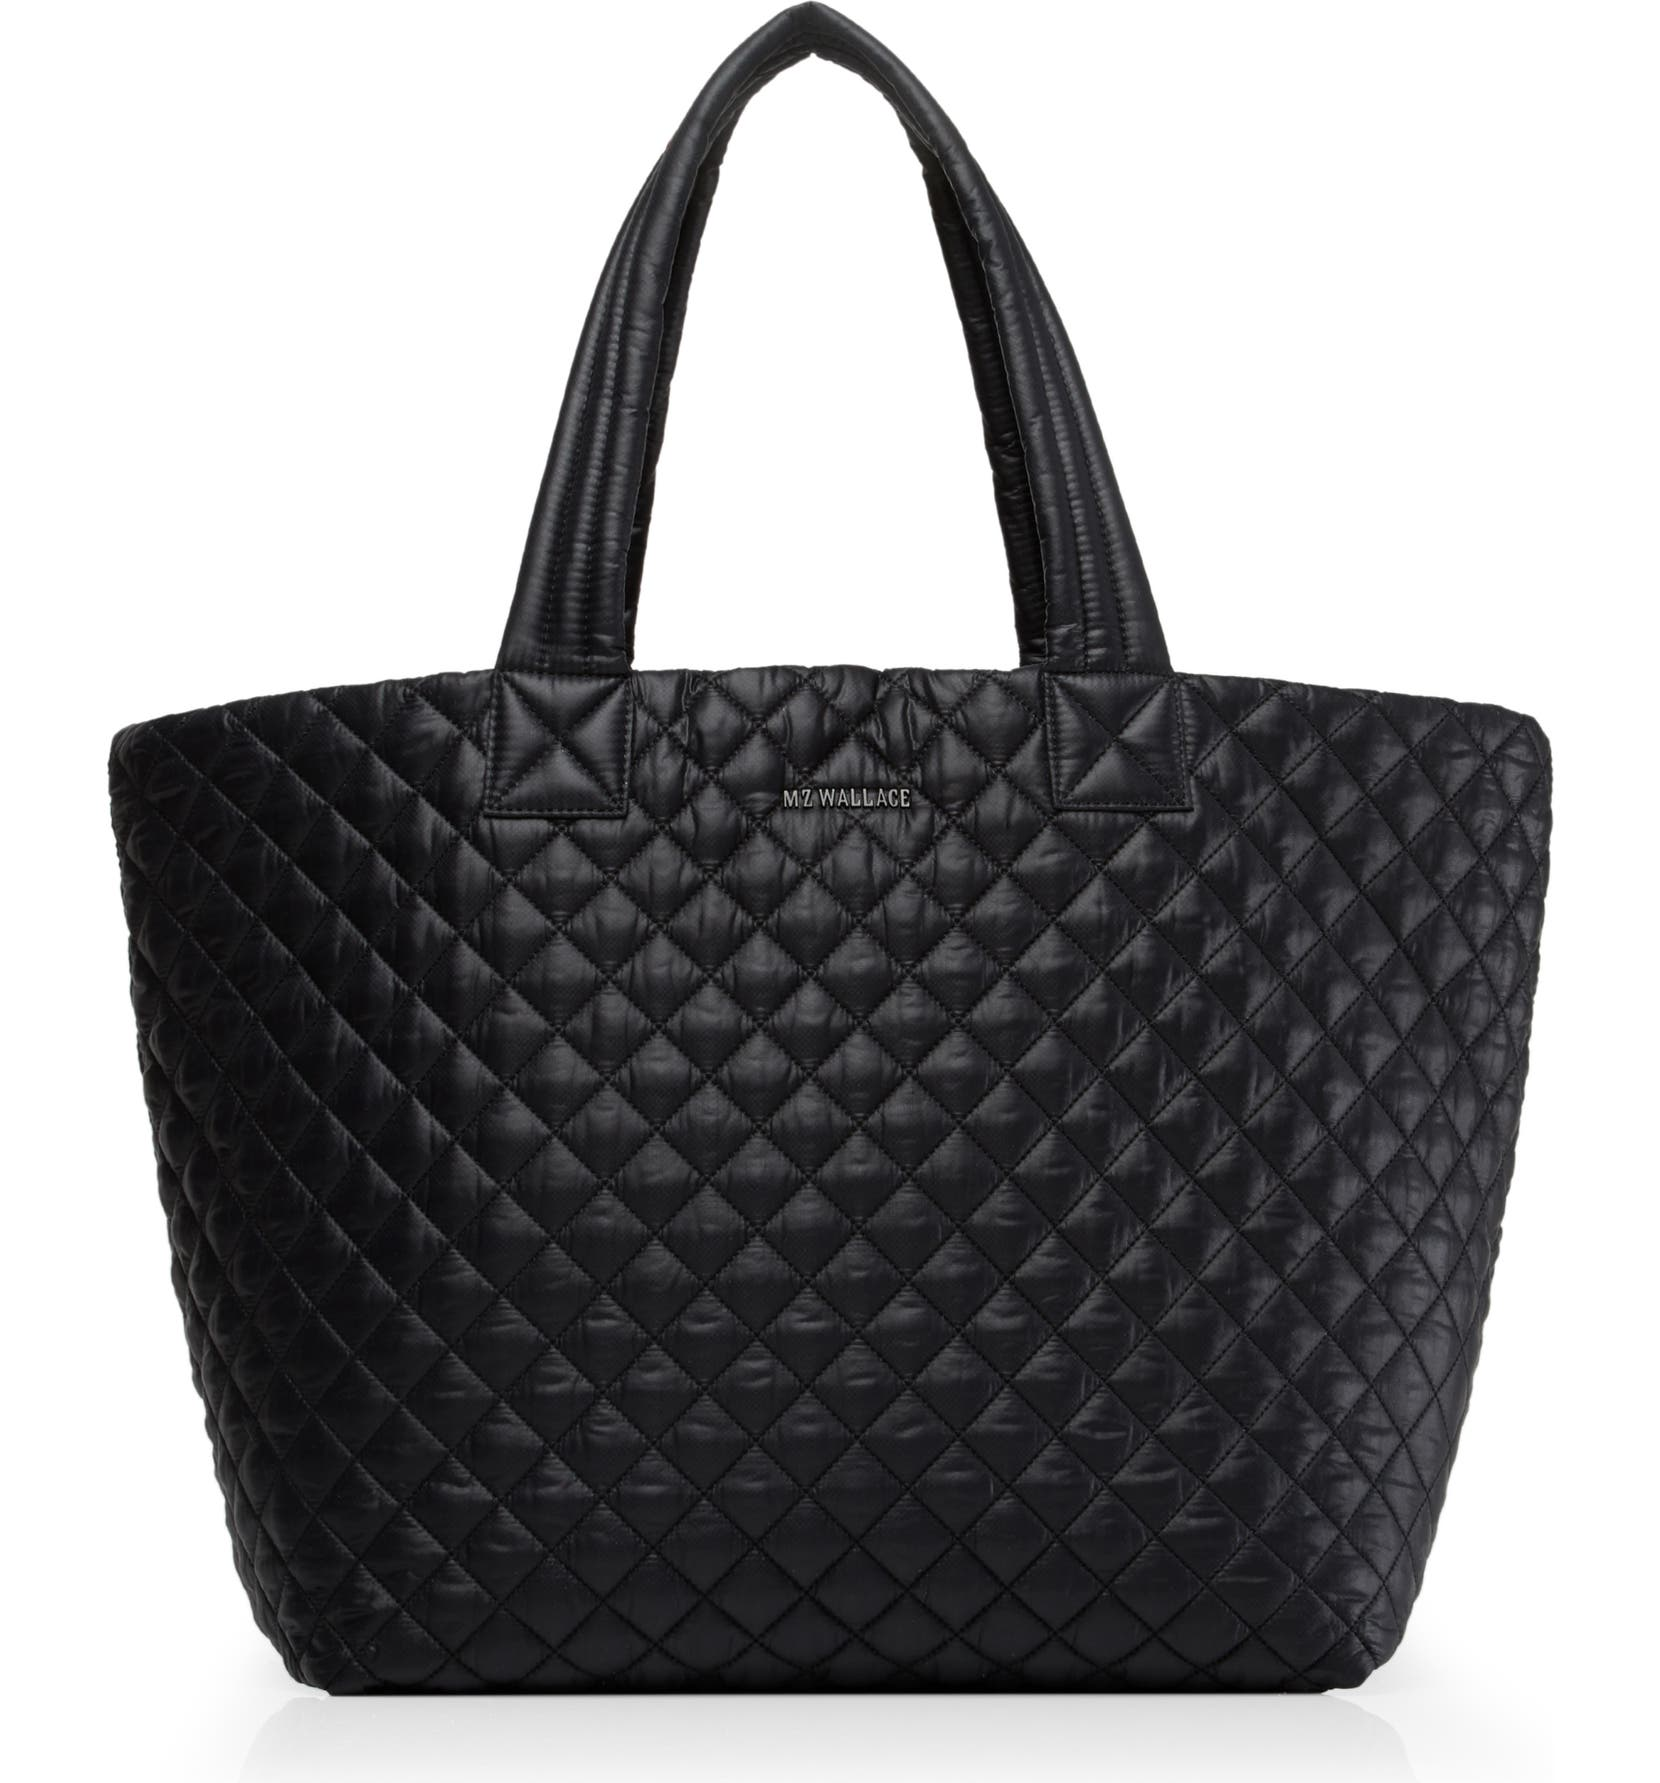 MZ WALLACE Large Metro Tote, Main, color, BLACK OXFORD - Hello Lovely Over 40 Winter Skin Care, Beauty & Wardrobe Essentials!